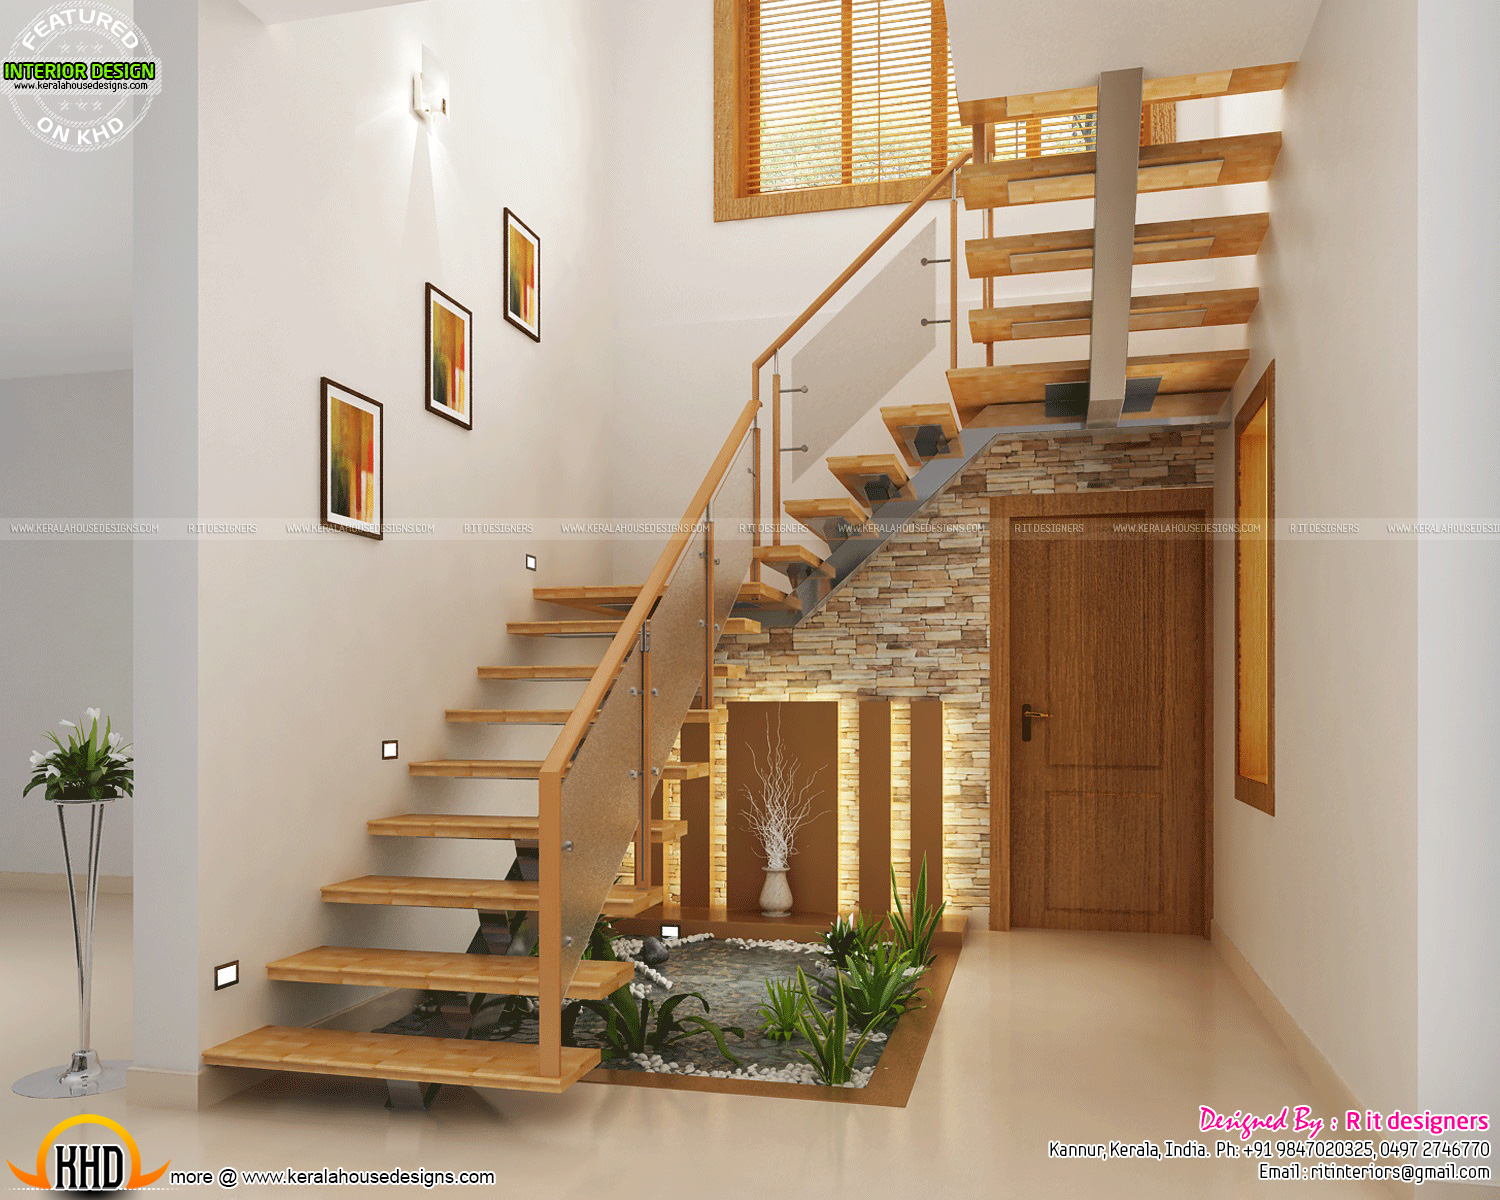 Under Stair design, wooden stair, kitchen and living